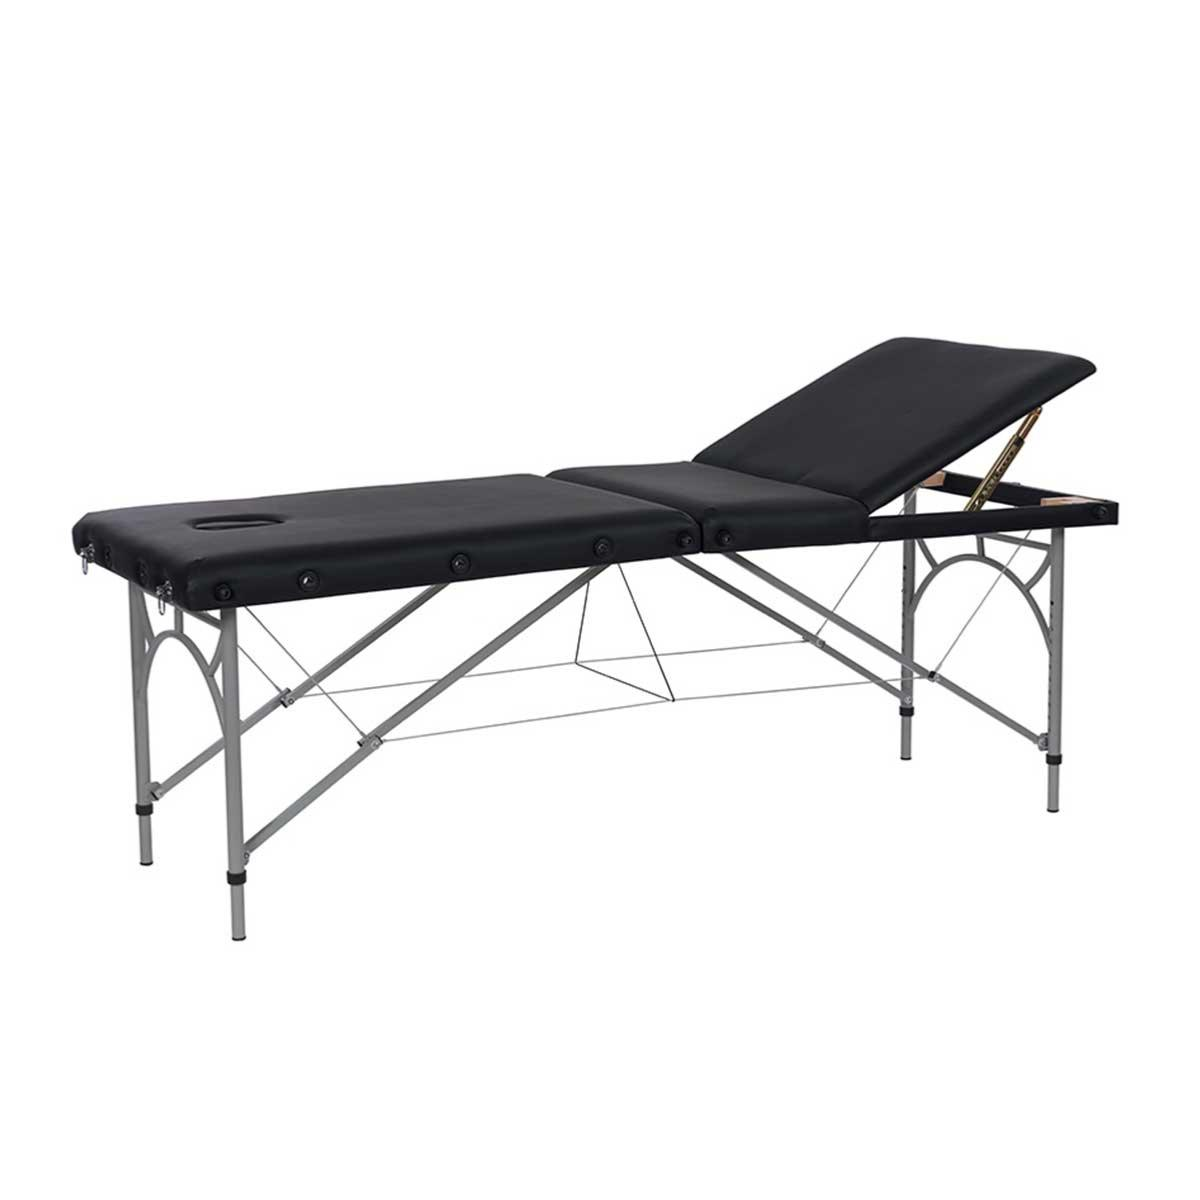 Table Aluminium Pliante Table De Massage Pliante En Aluminium Compacte